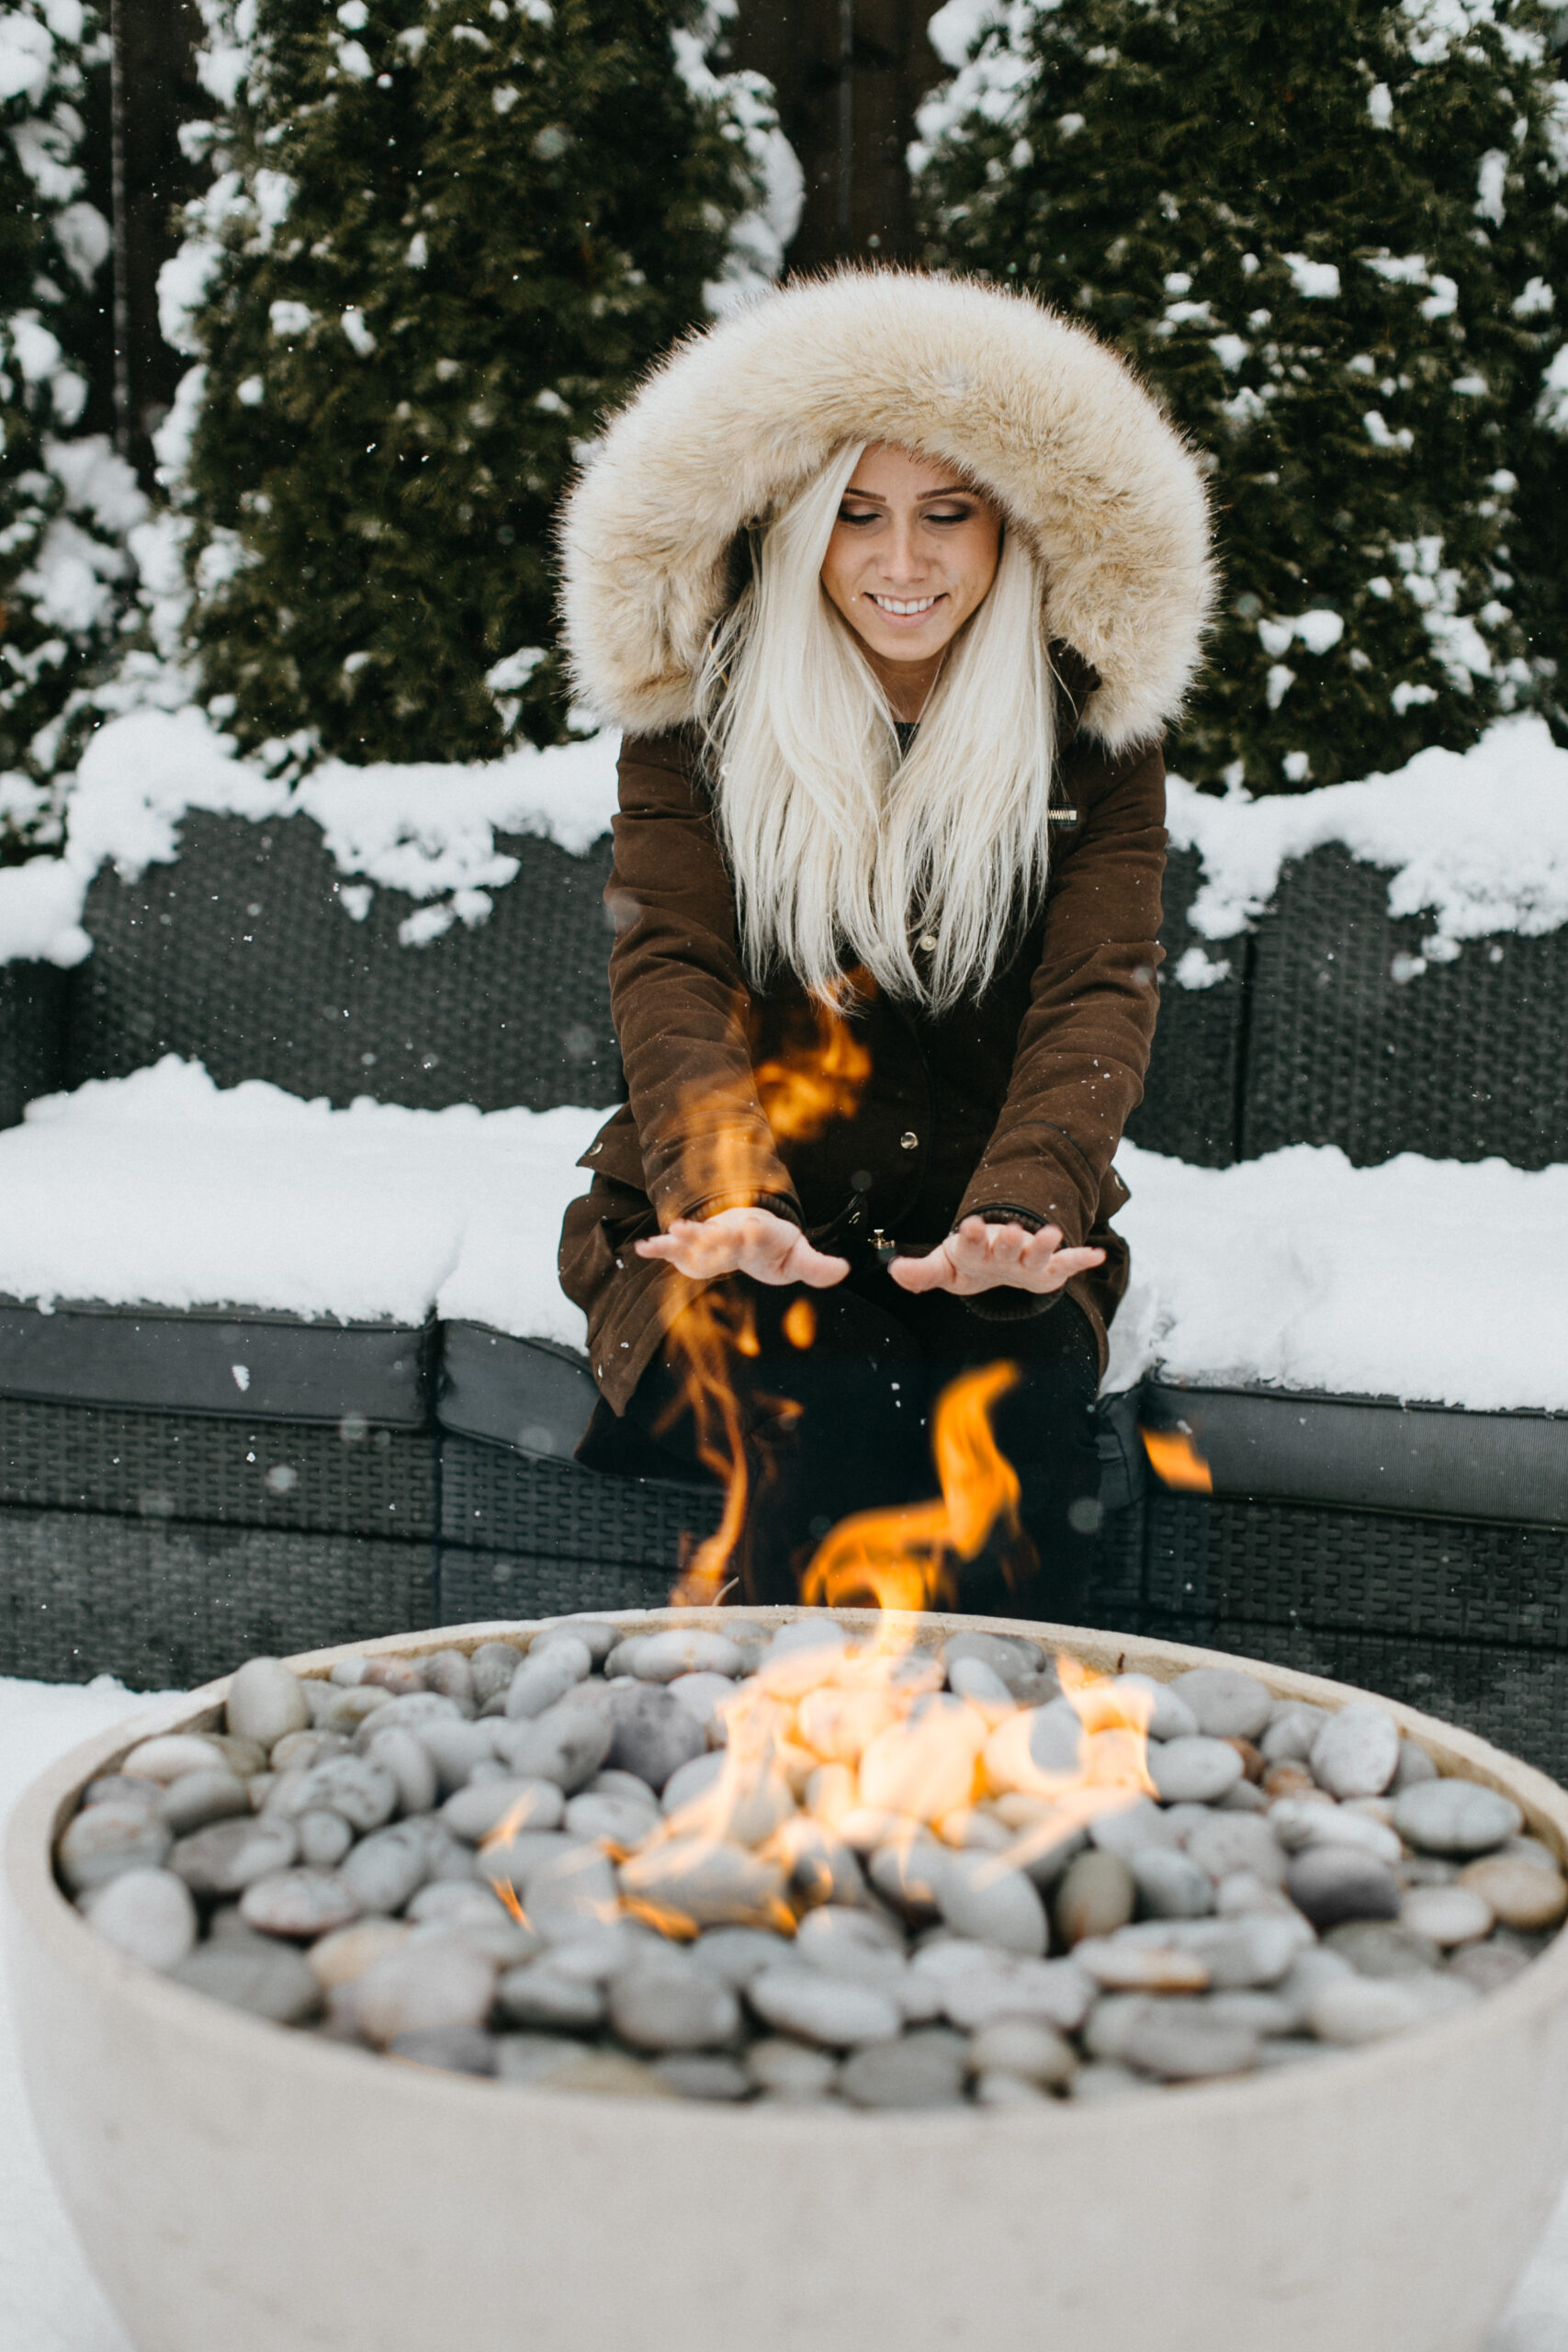 Enjoying fire table in the winter